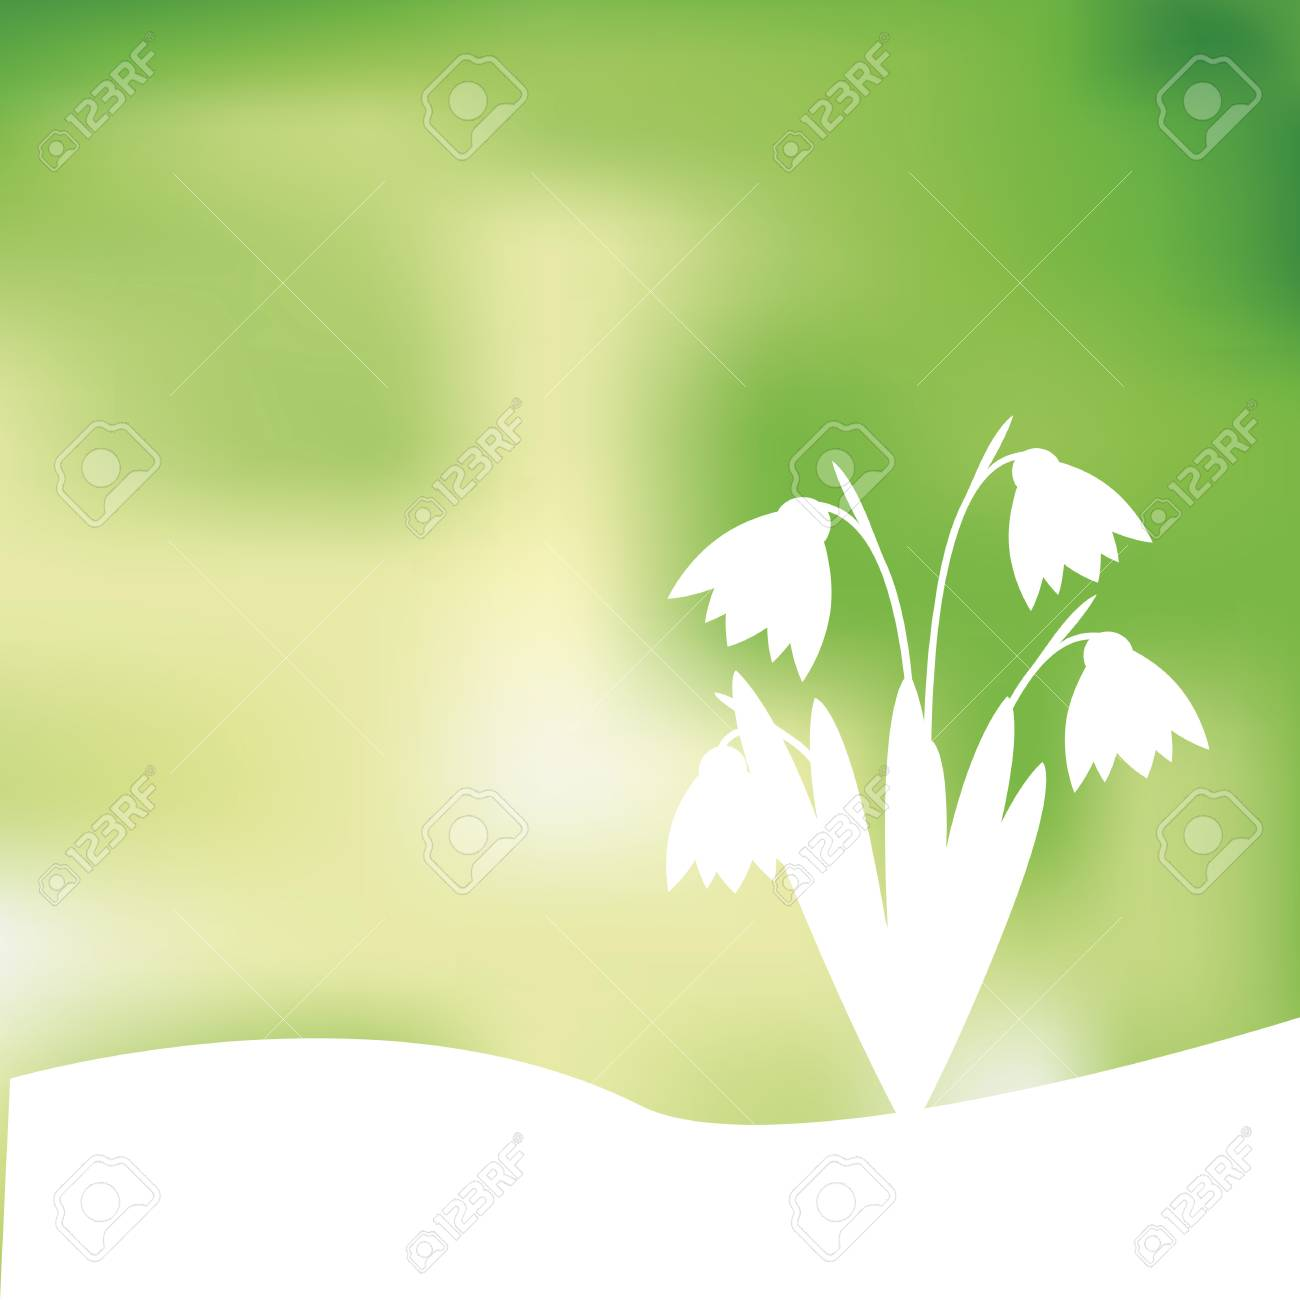 Green and yellow spring background with sunlight Stock Vector - 24913967